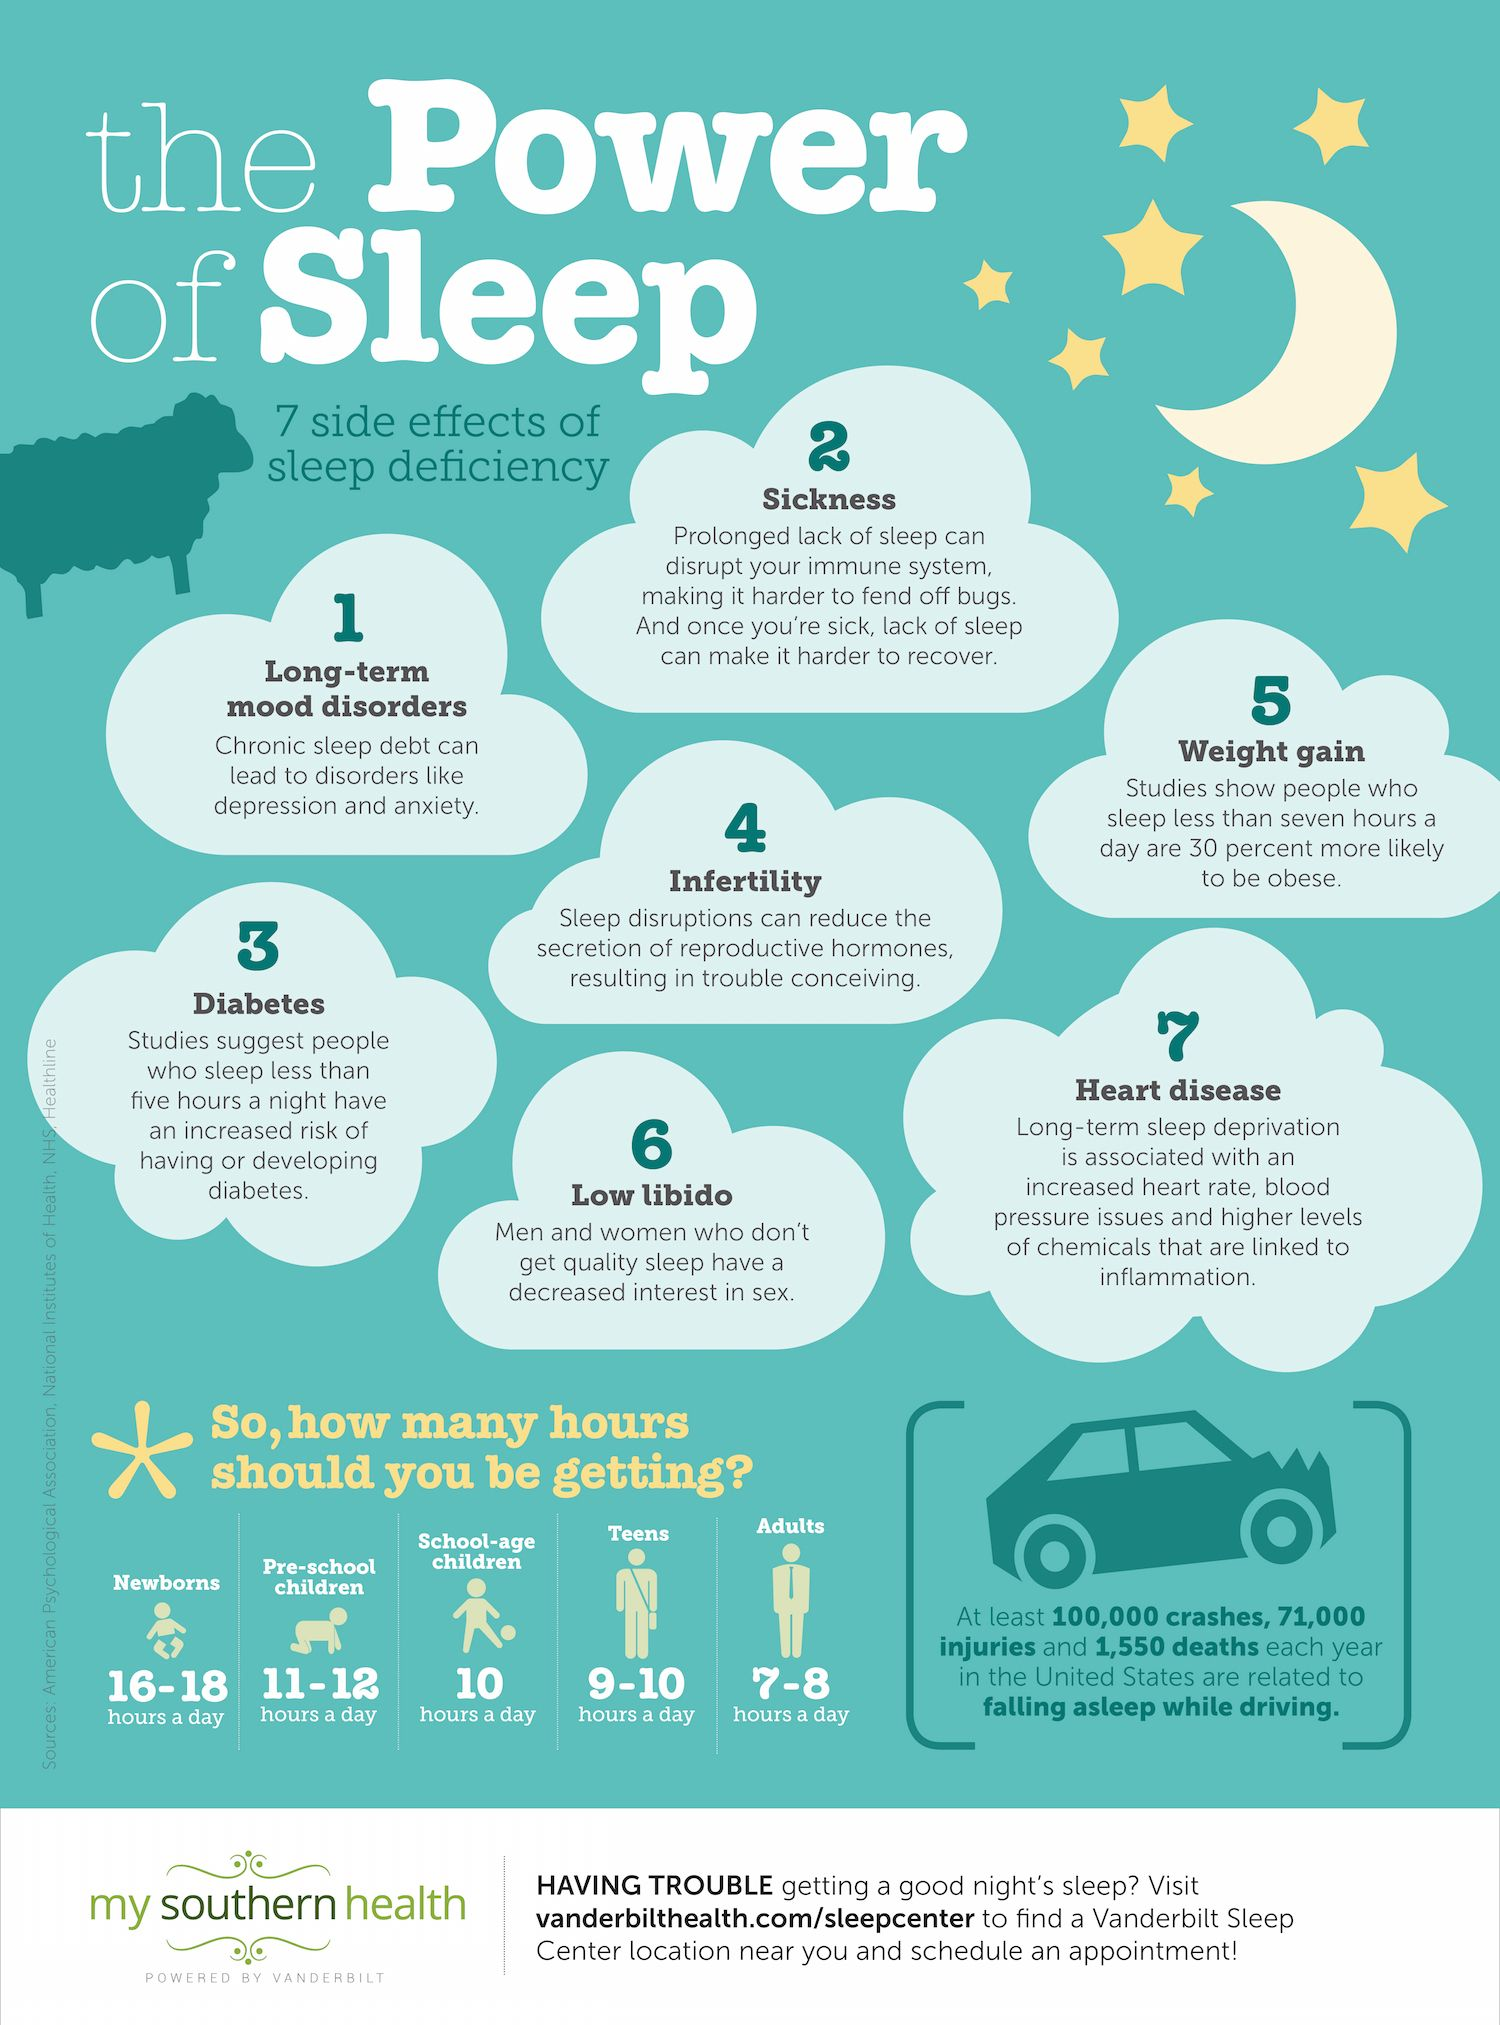 an introduction to the importance of sleep and issue of insomnia Sleep disorders encompass a wide range of conditions that have been most recently categorized in the international classification of sleep disorders, second edition (icsd-2) 1 the icsd-2 lists more than 80 distinct sleep disorders sorted into 8 categories, including the insomnias, sleep-related breathing disorders, hypersomnias of central.